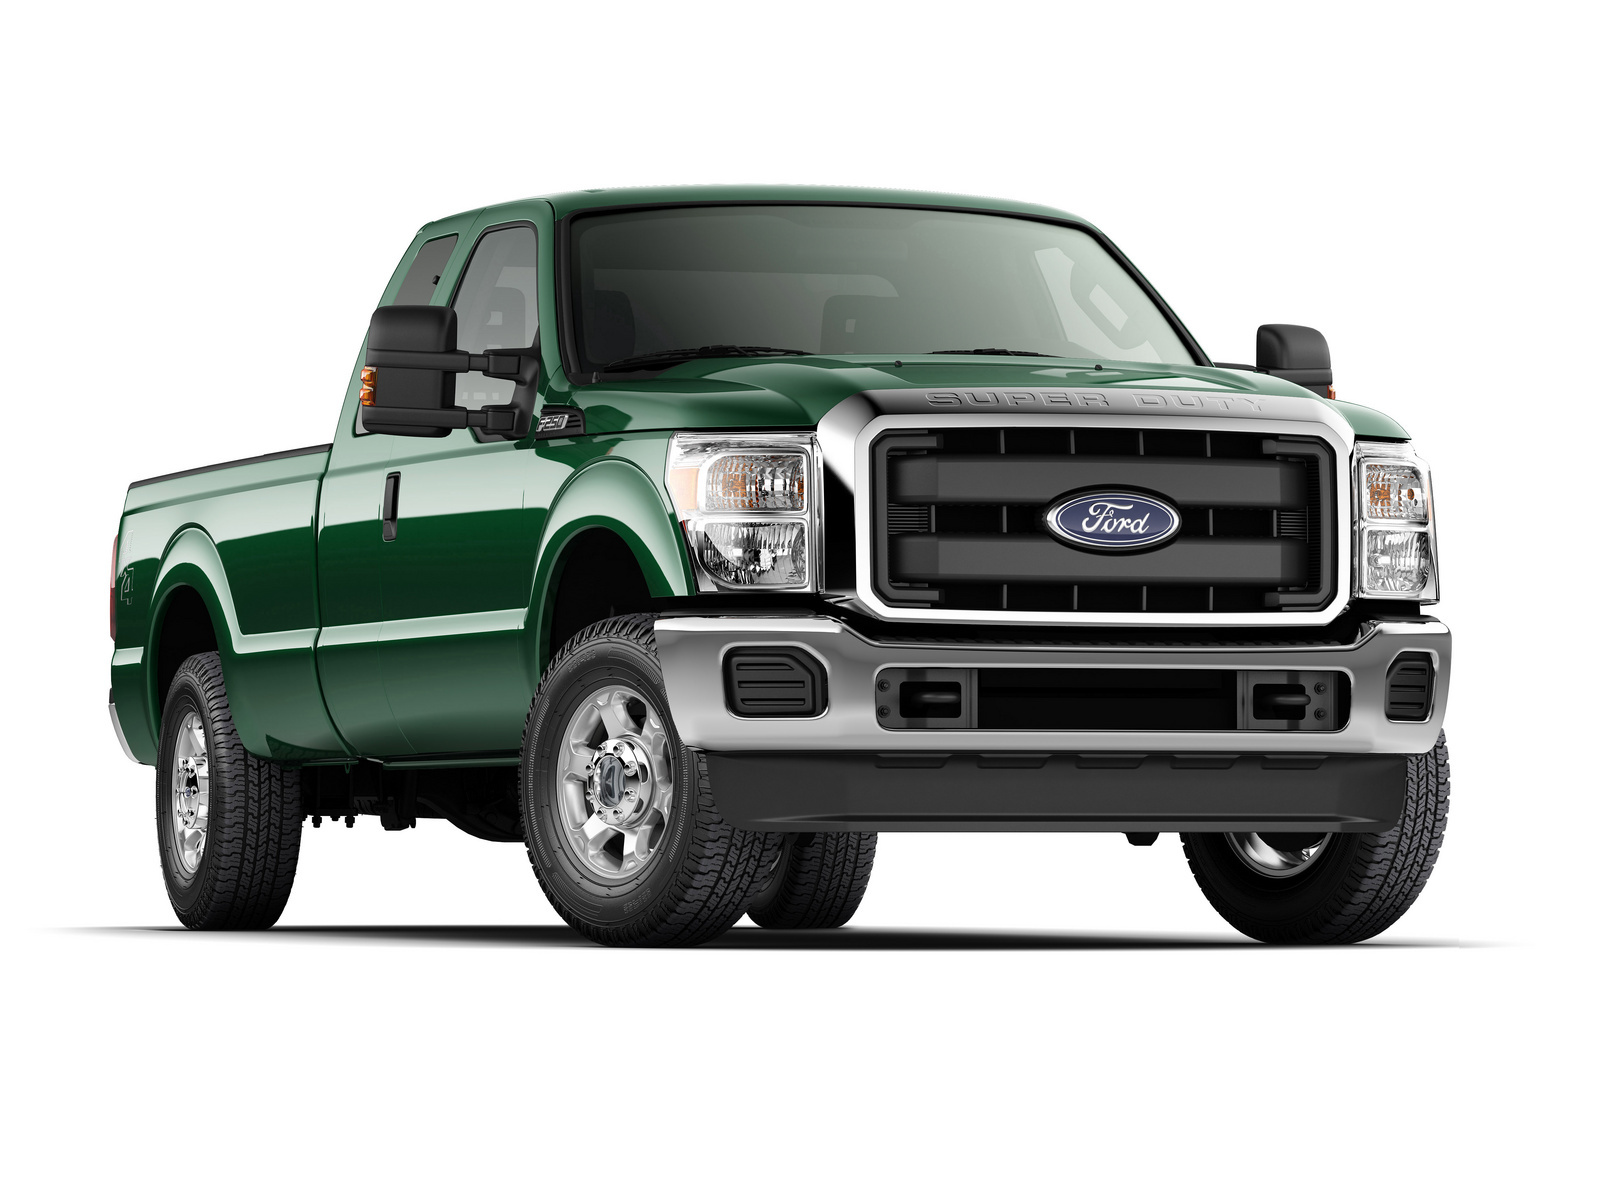 2014 ford f 250 super duty overview cargurus - 2014 Ford F Series Super Duty